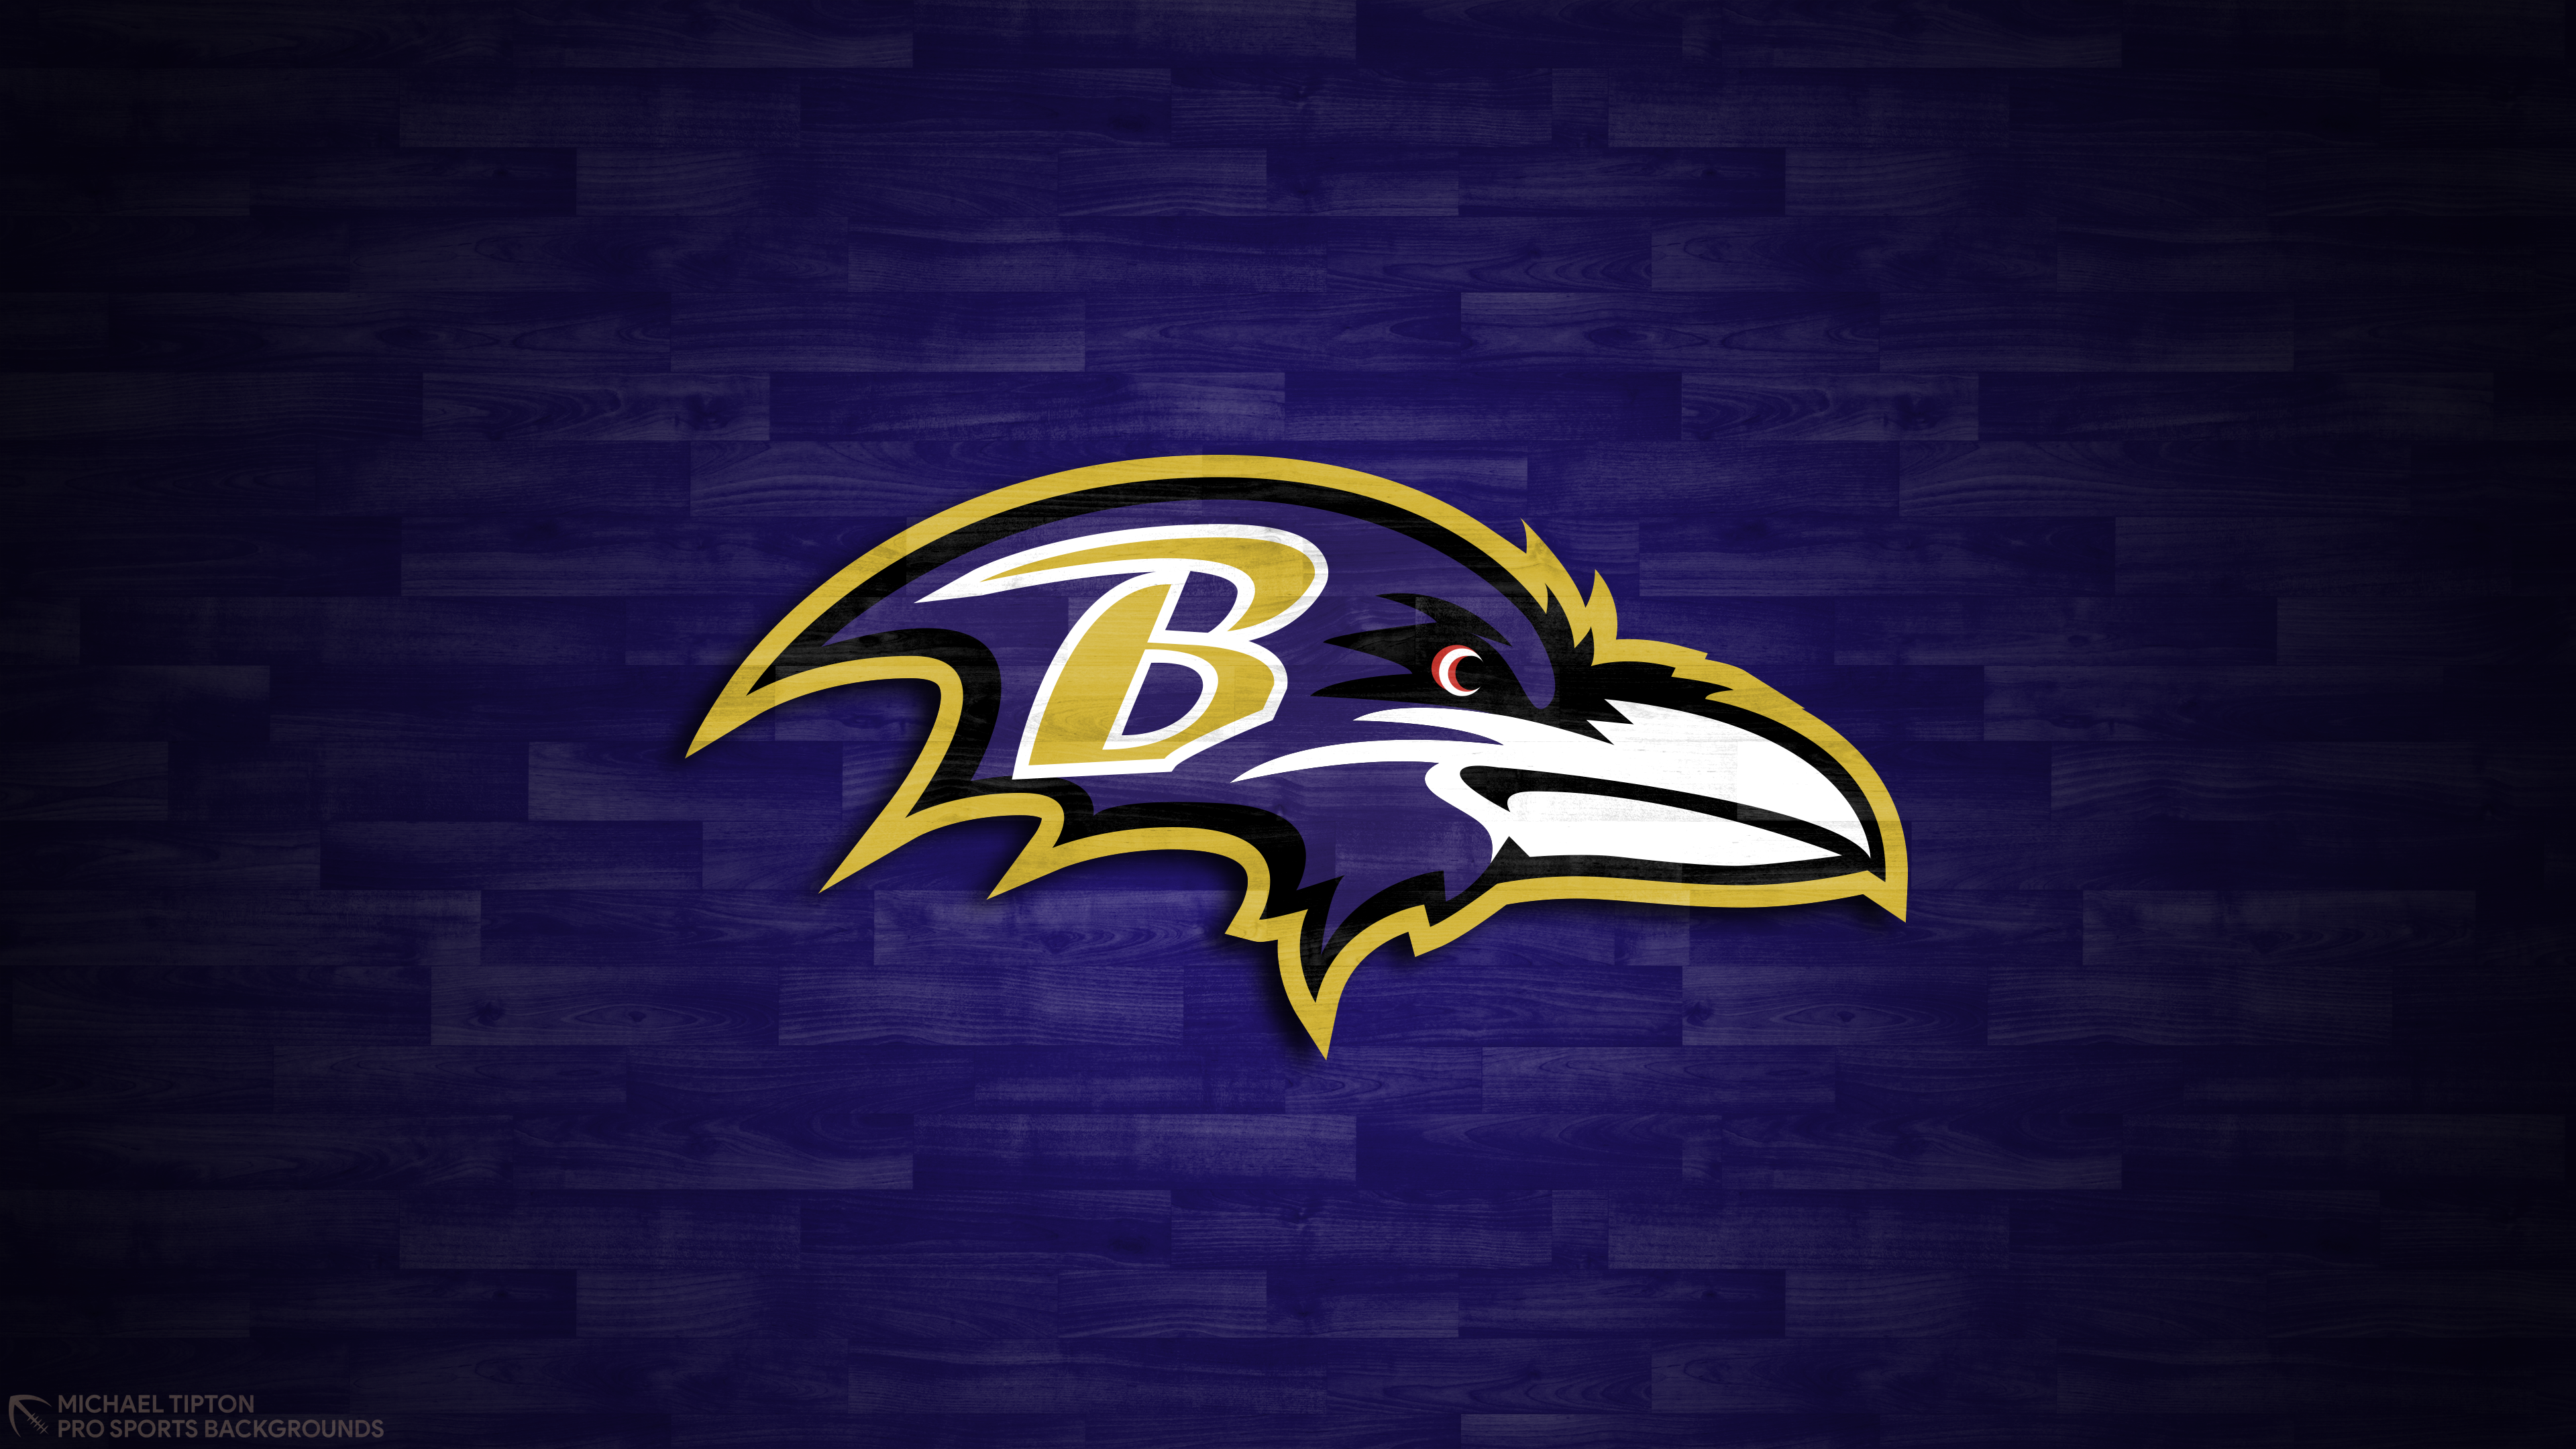 2019 Baltimore Ravens Wallpapers Pro Sports Backgrounds 3840x2160